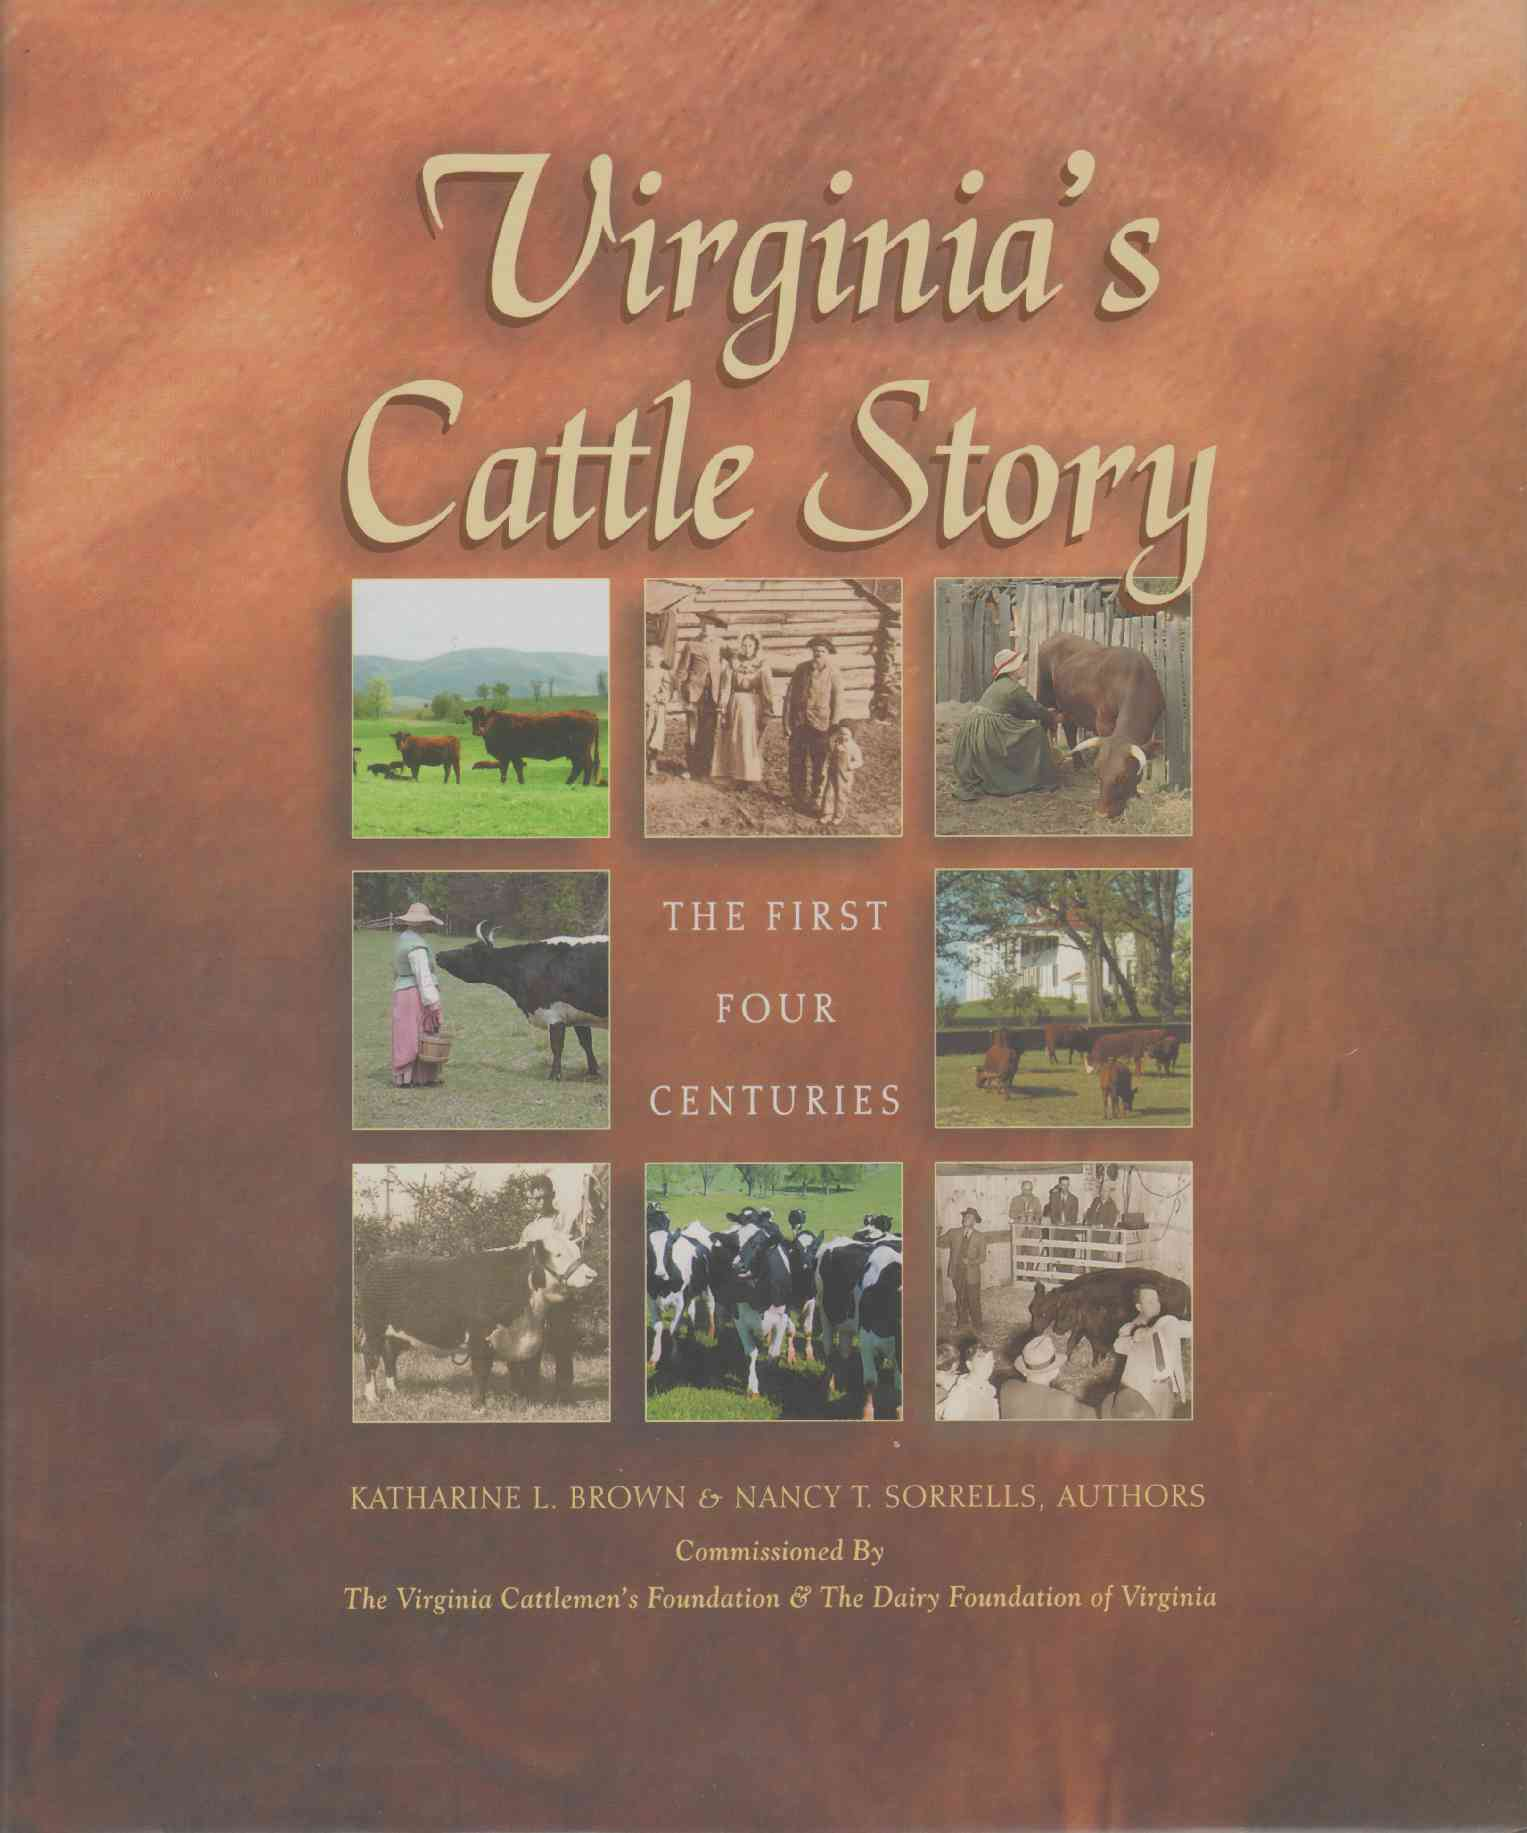 Image for VIRGINIA'S CATTLE STORY The First Four Centuries